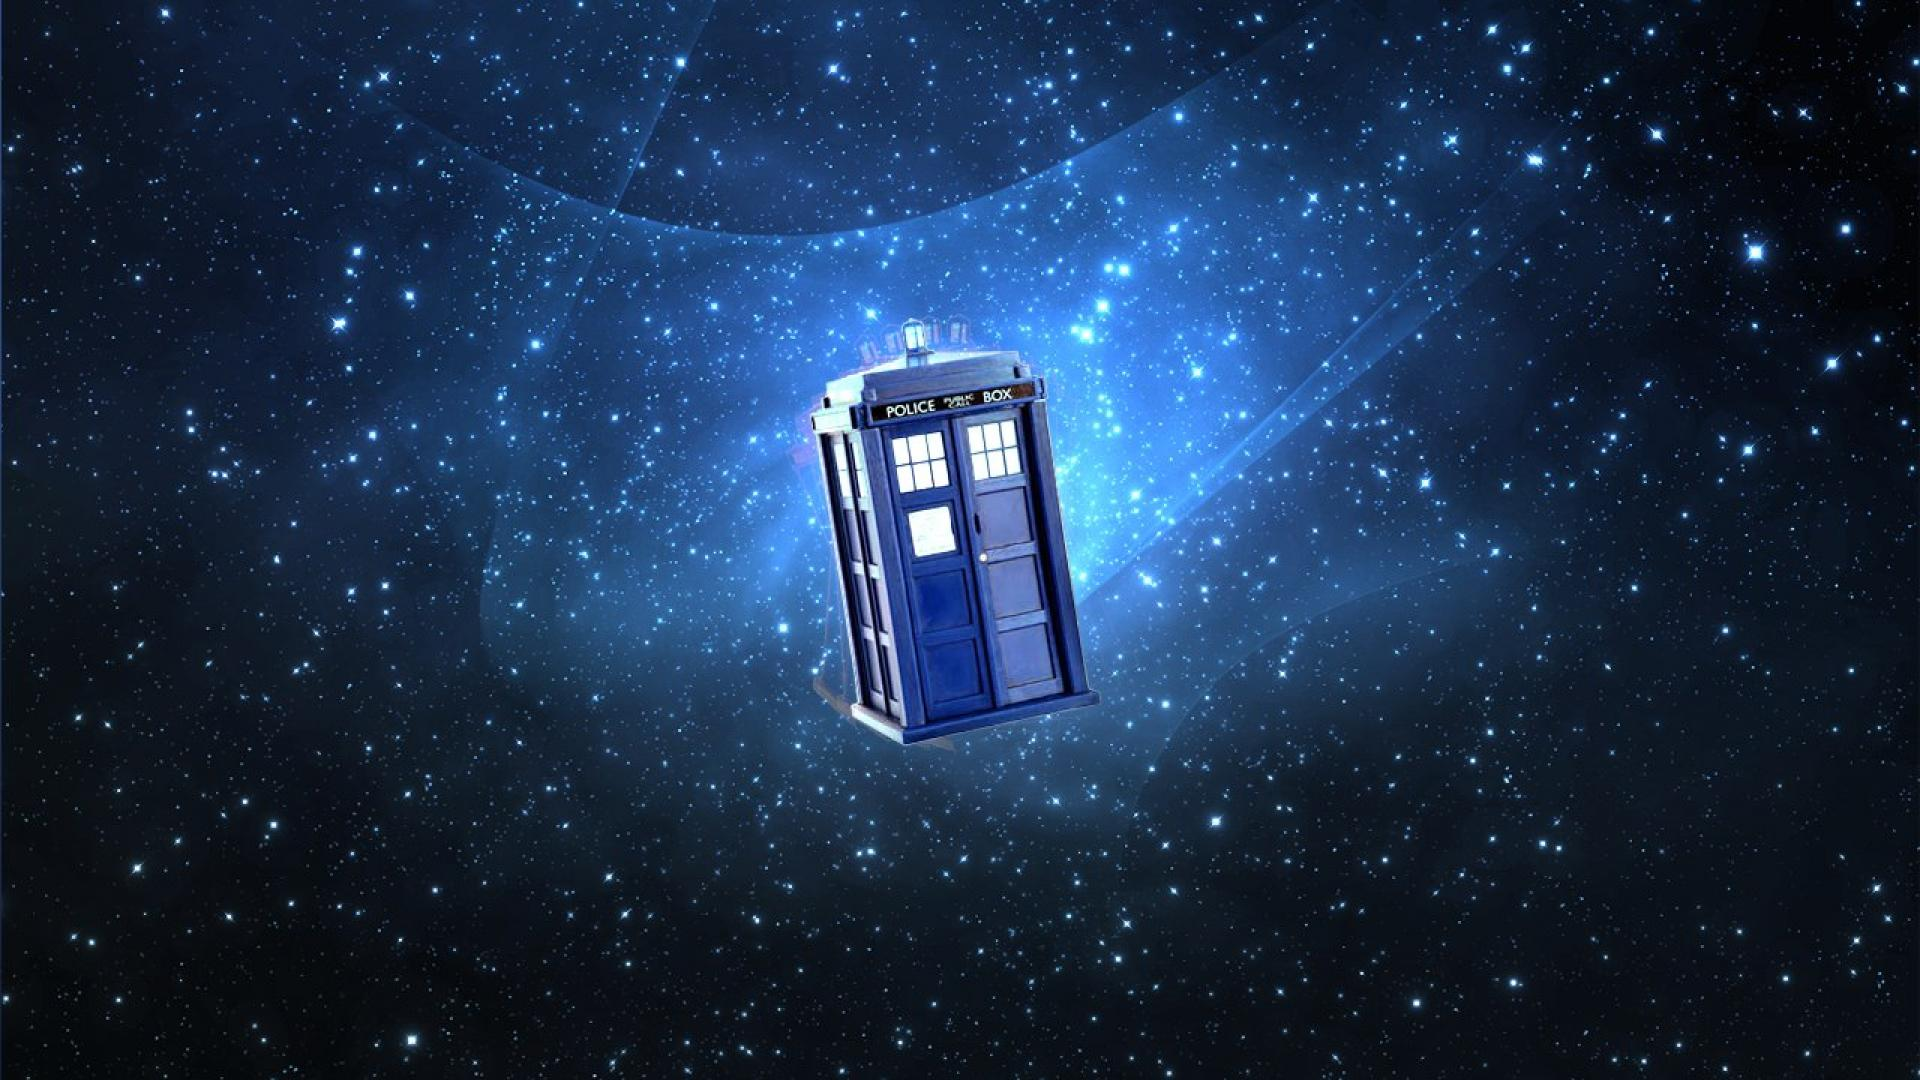 Dr Who Wallpaper